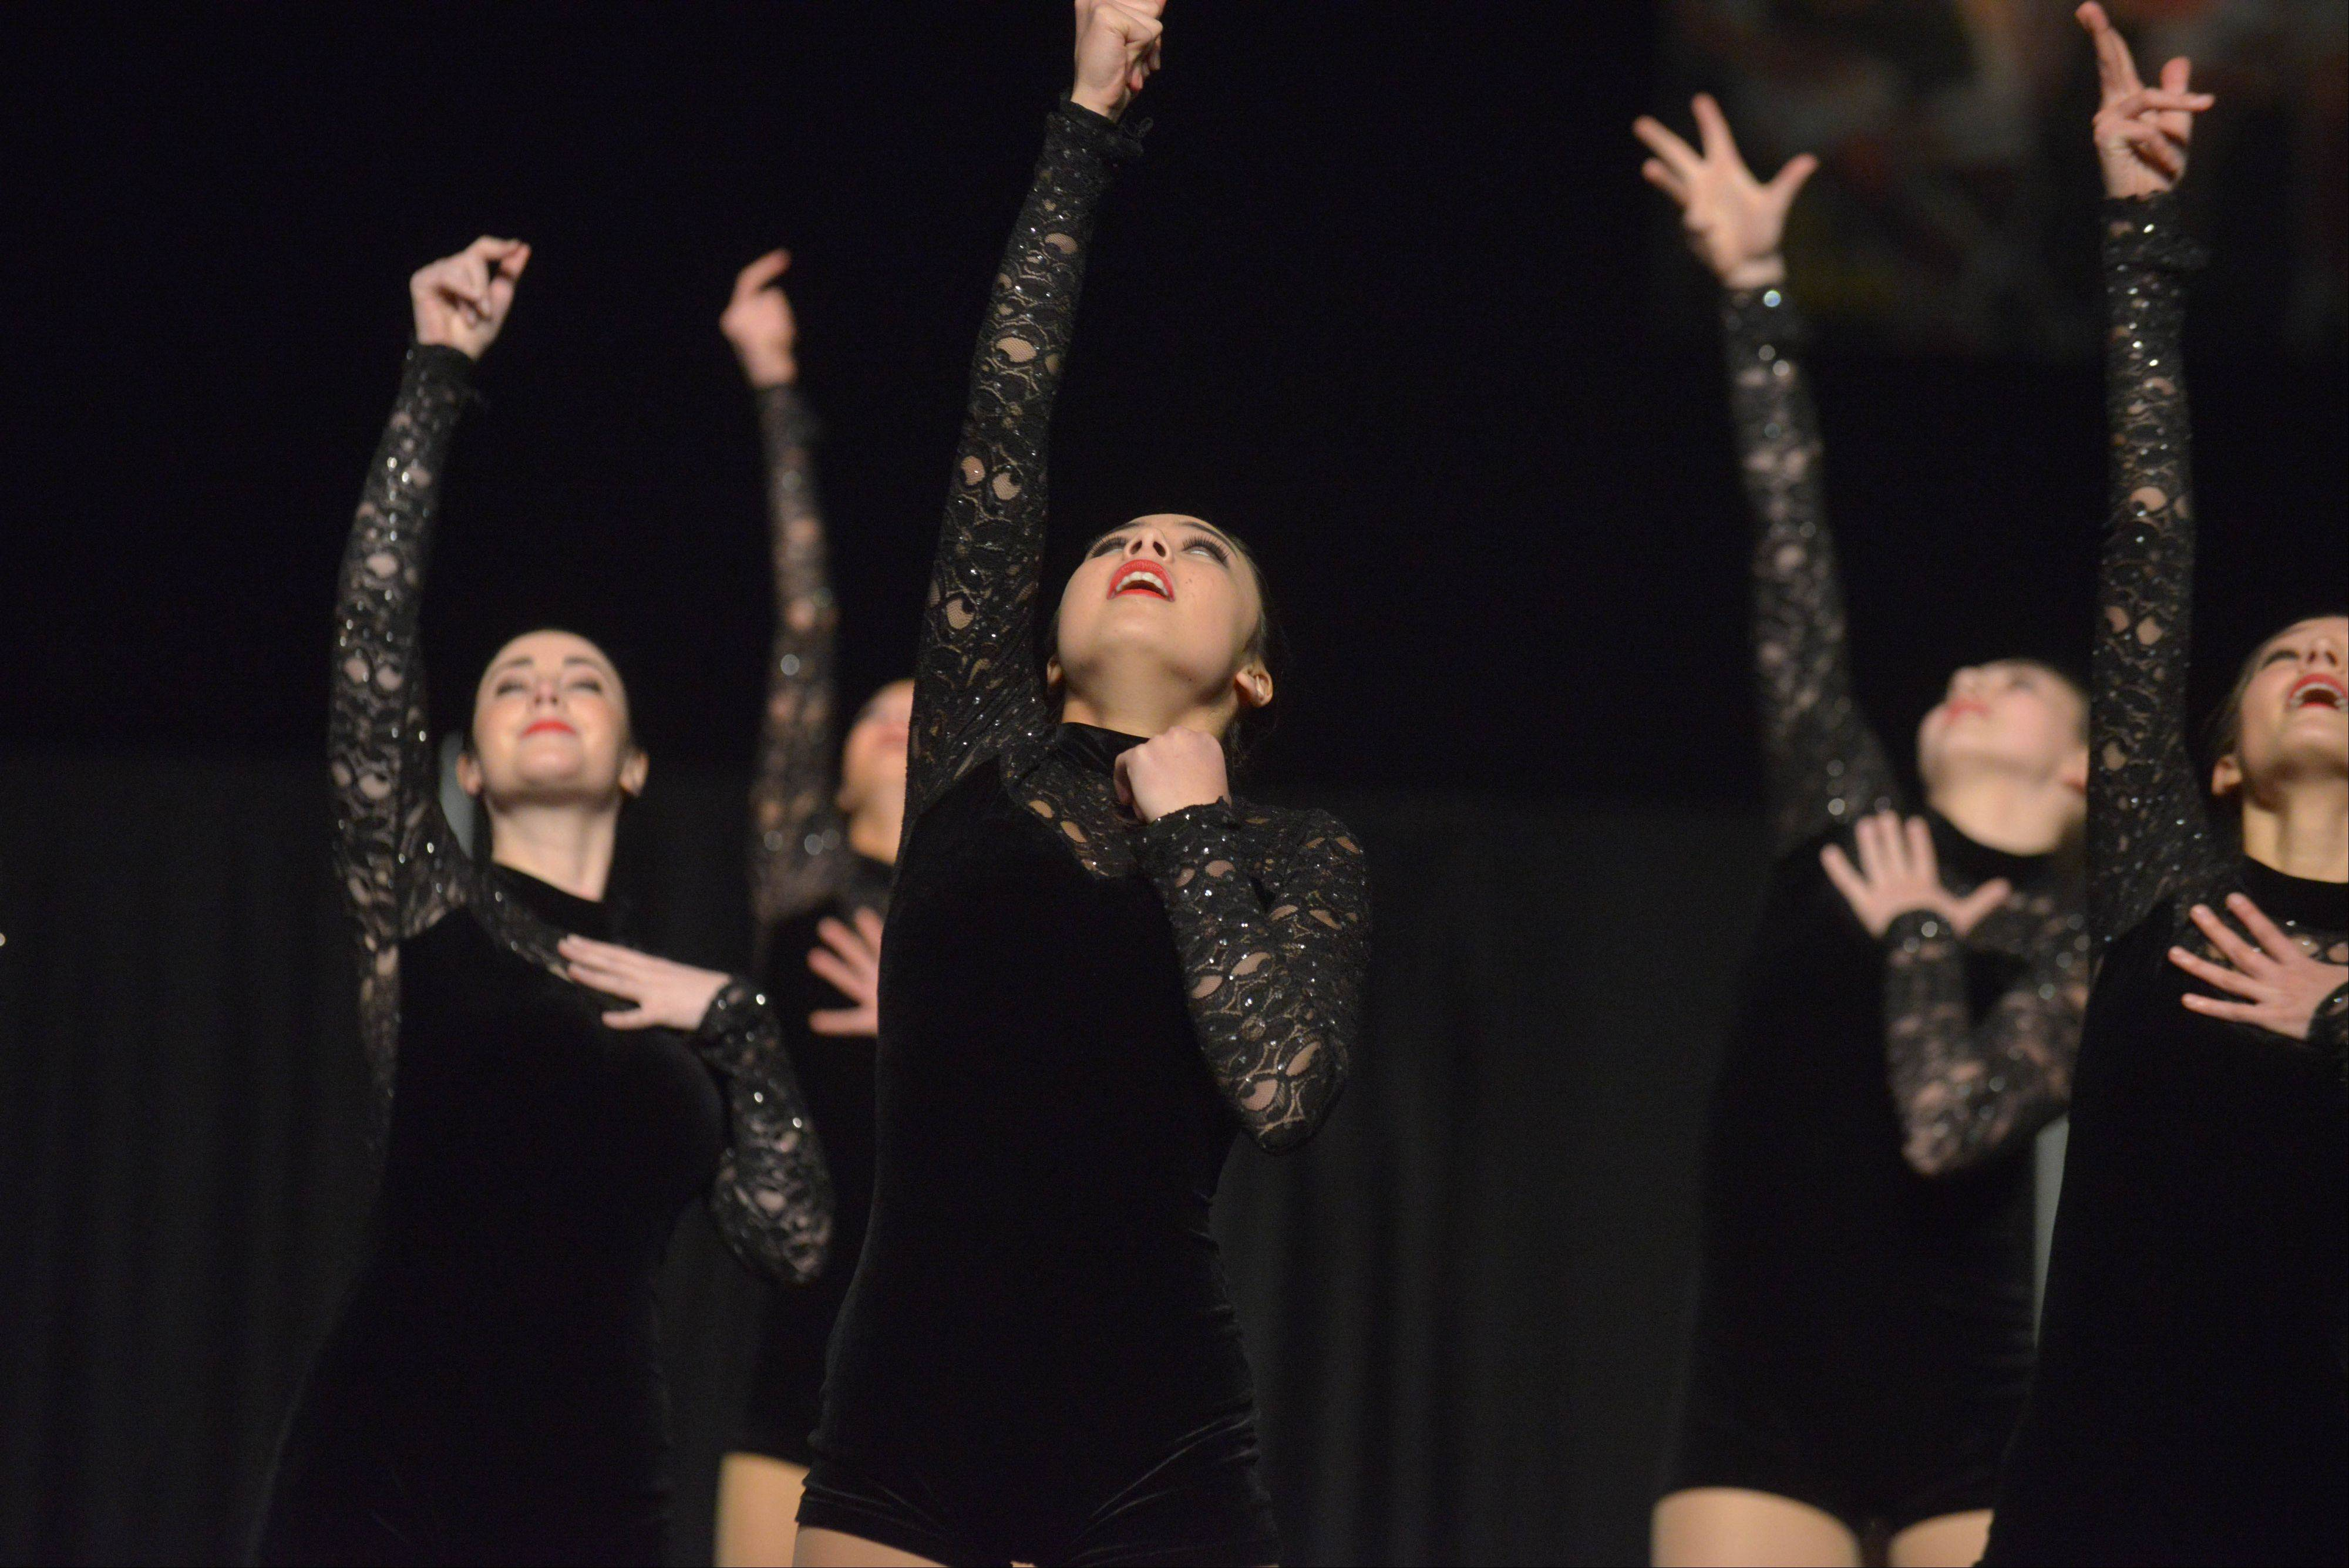 The Naperville Central High School dance team takes part in the Competitive Dance preliminary round Friday at U.S. Cellular Coliseum in Bloomington.